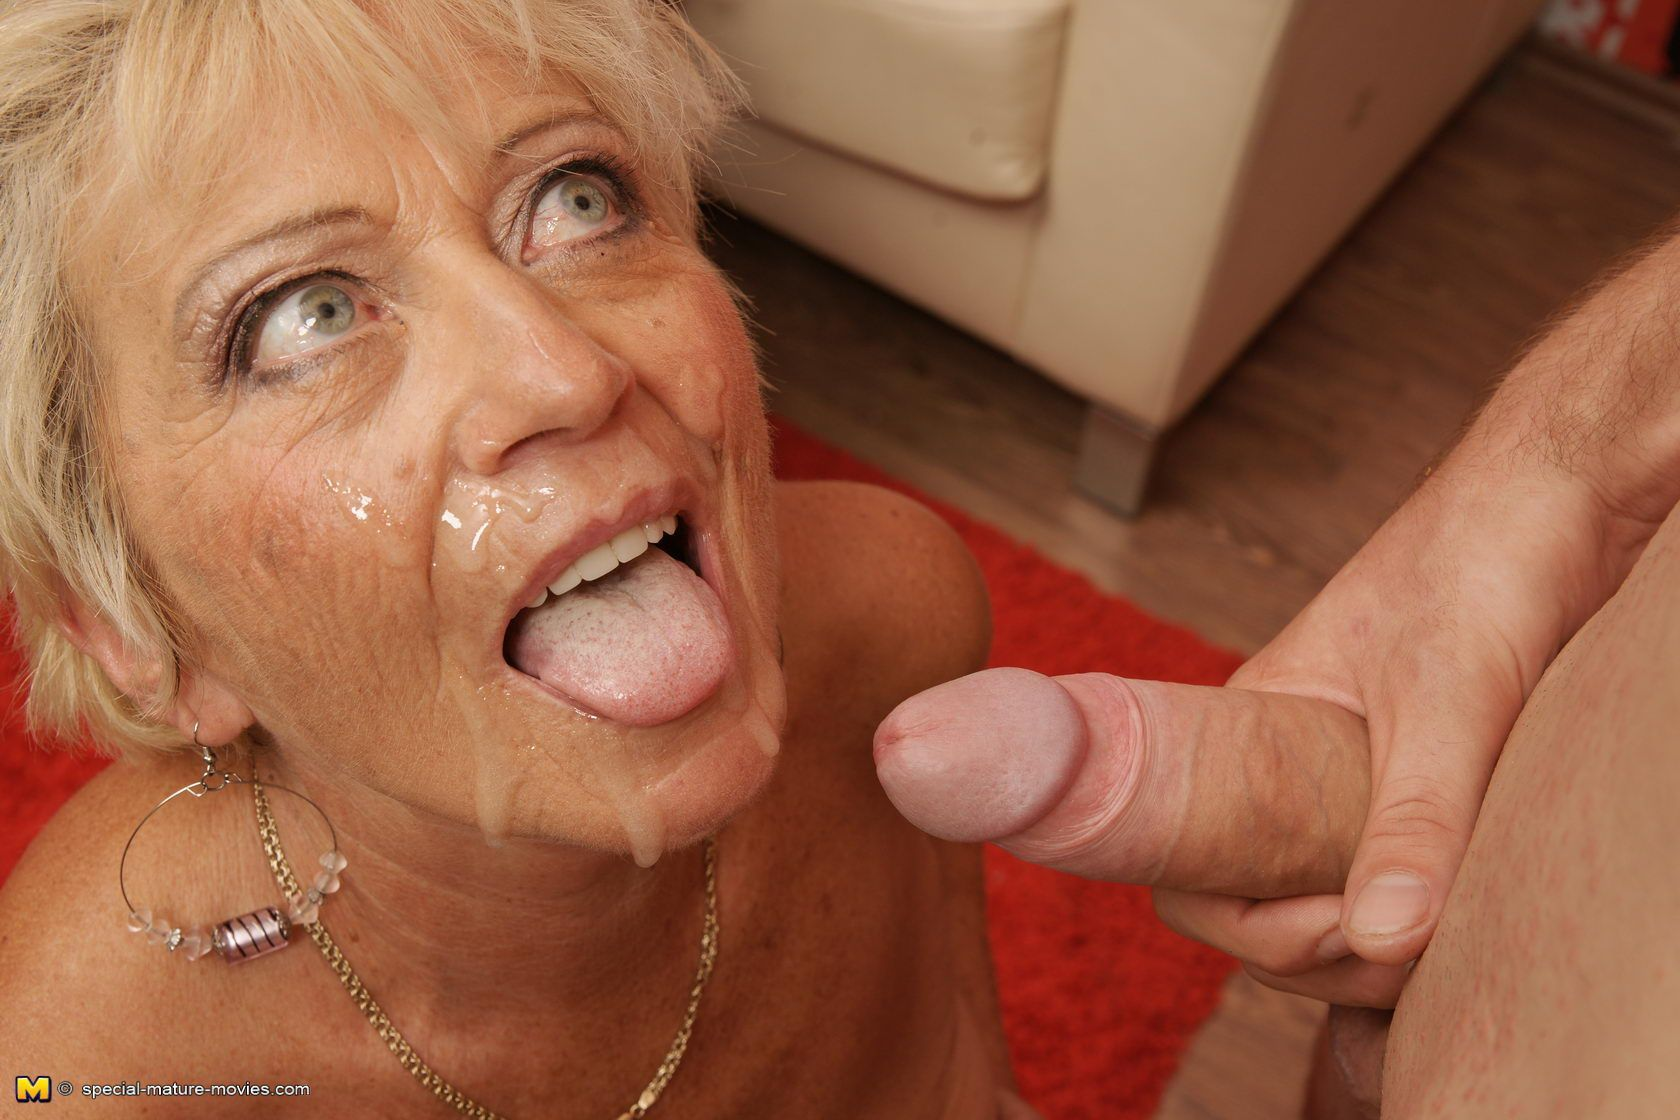 really. pornstar shaved handjob cock load cumm on face brilliant idea necessary